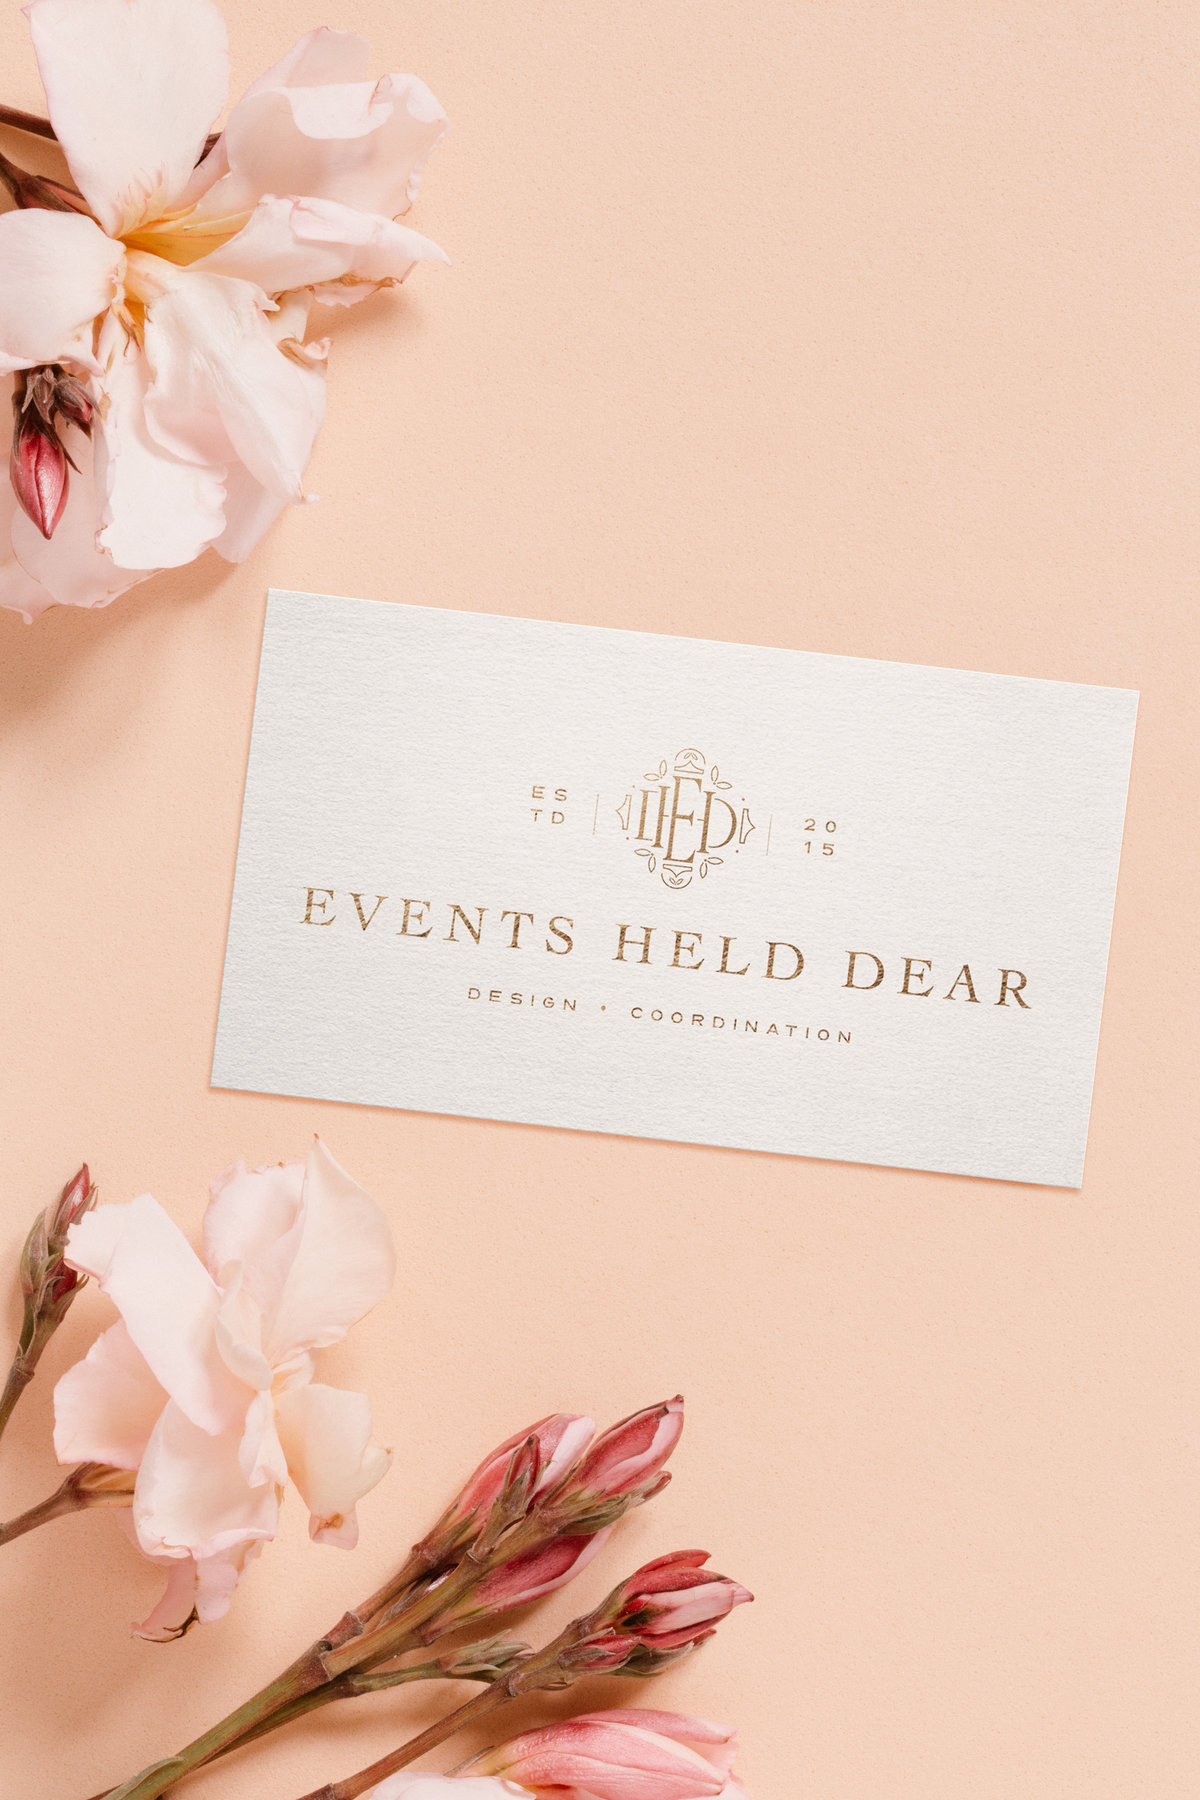 Events Held Dear